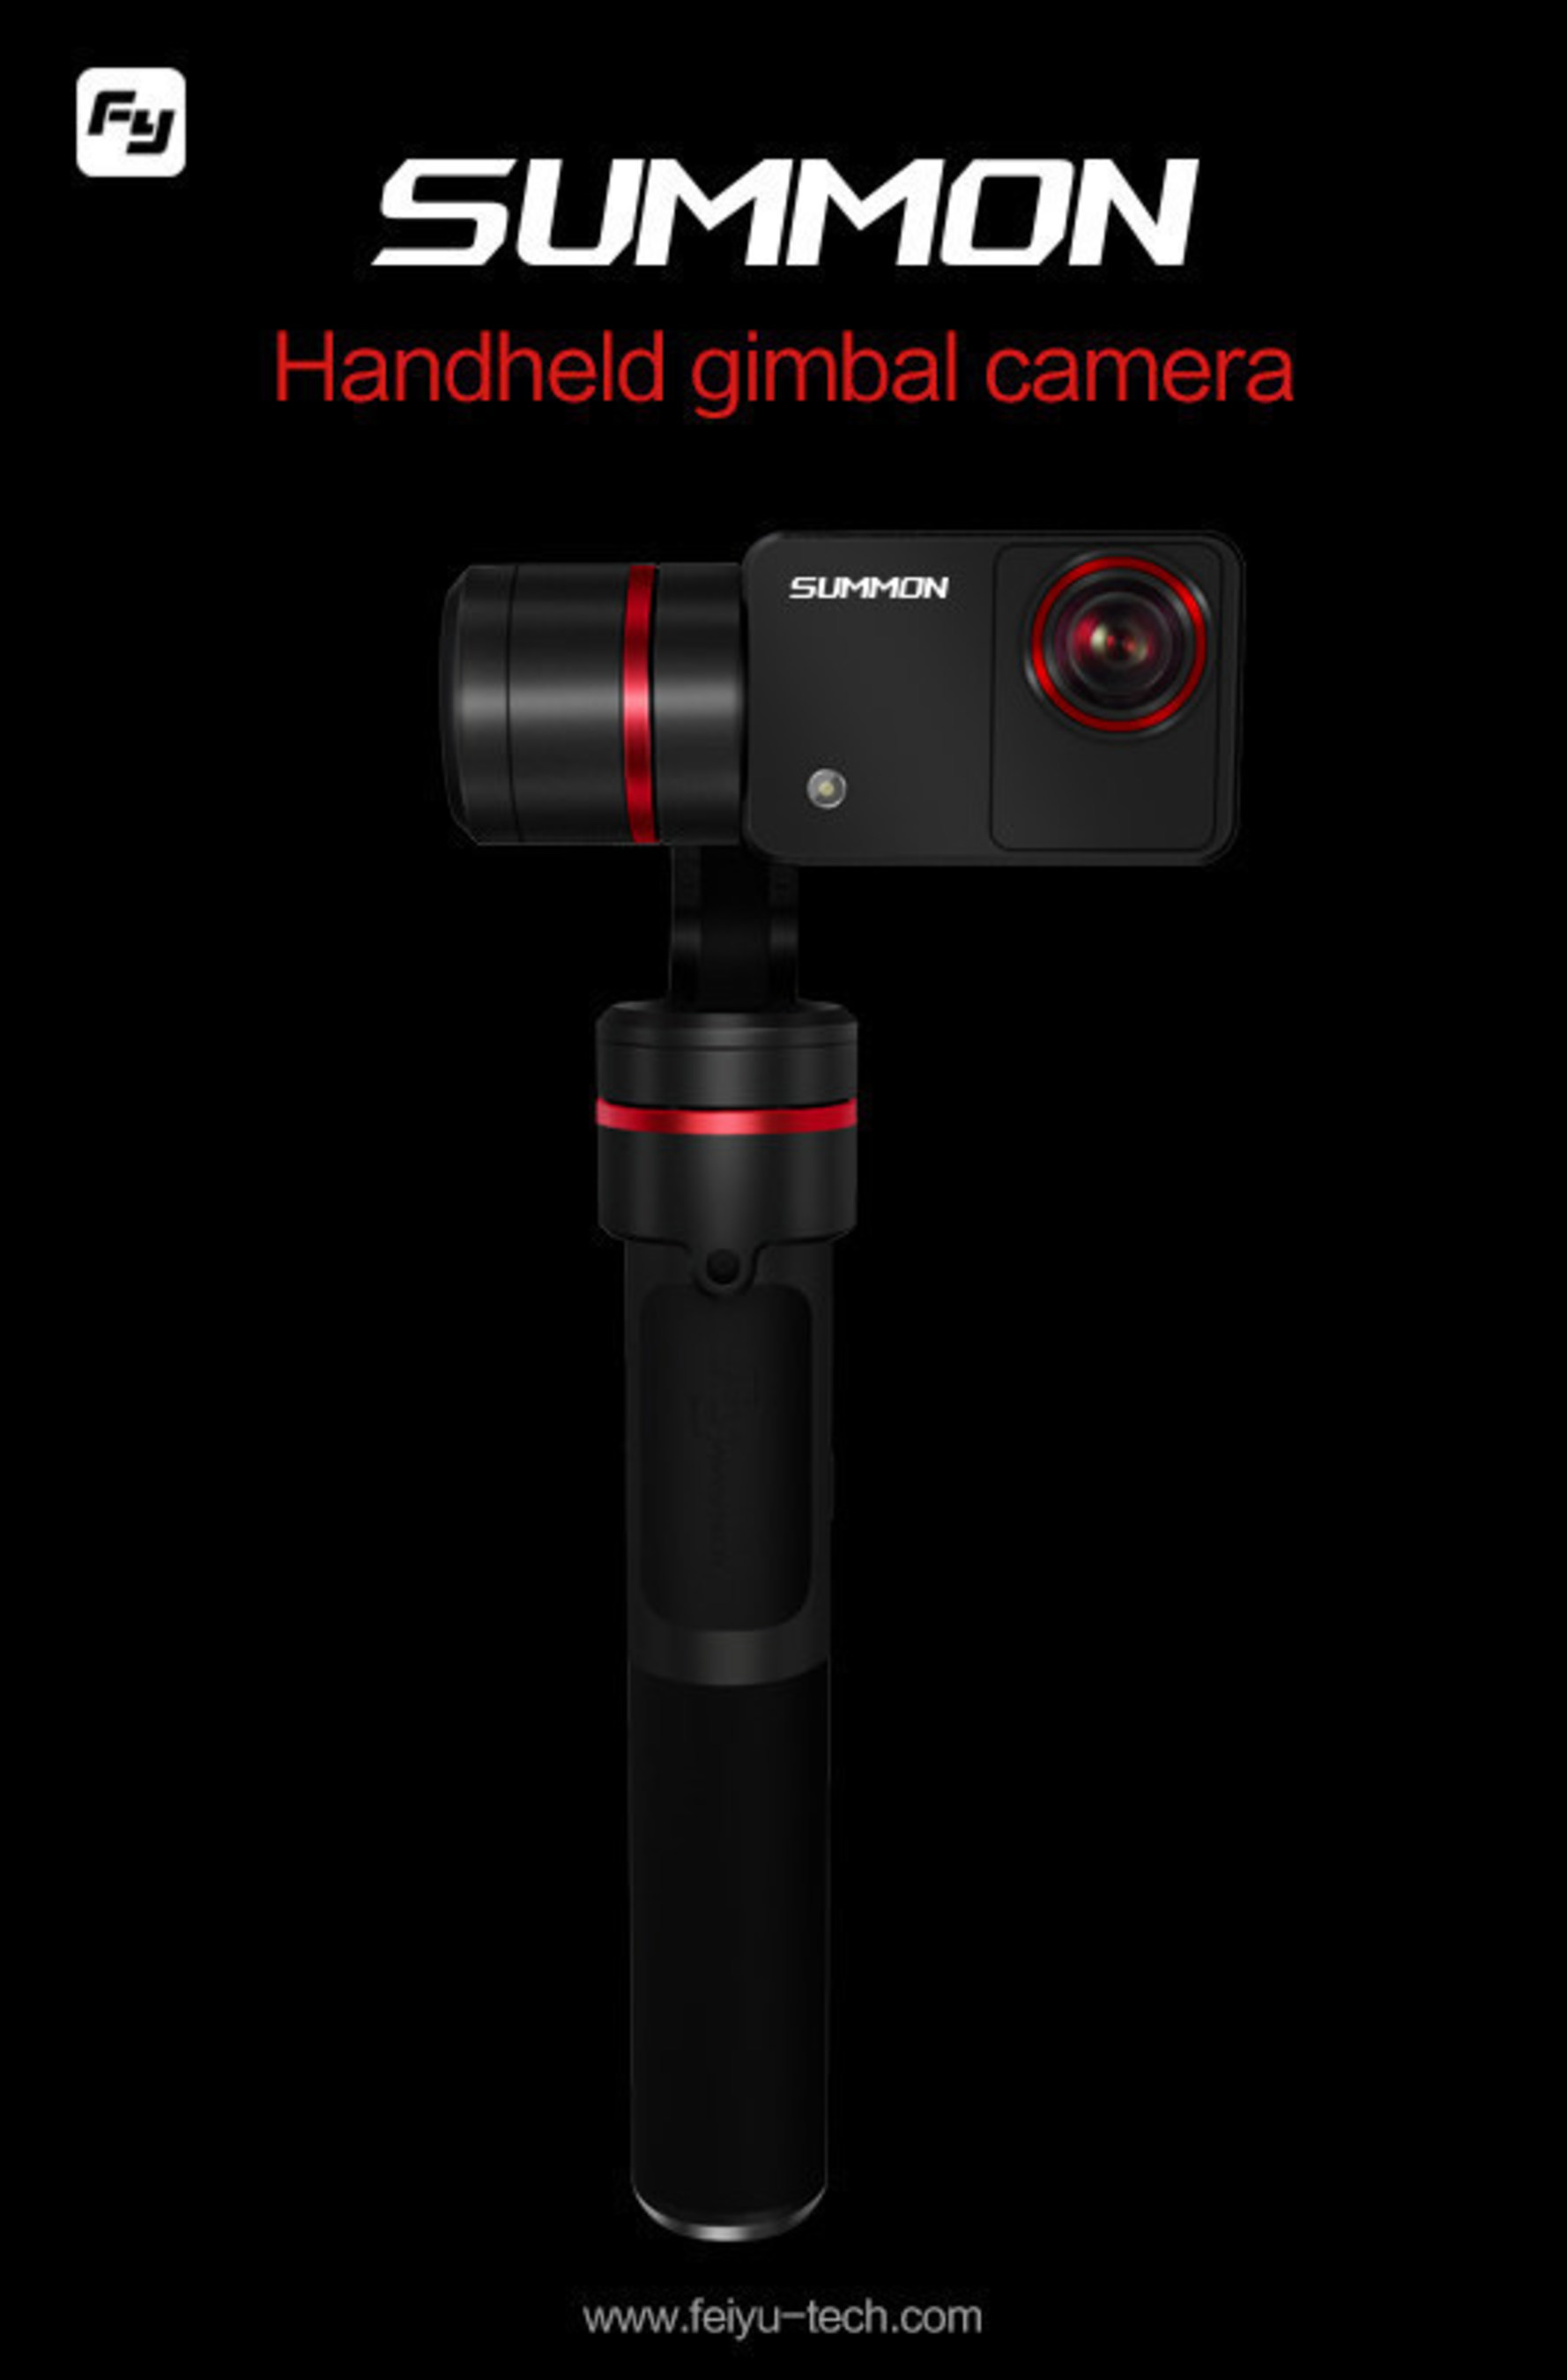 Feiyutech's SUMMON handheld gimbal camera can shoot 4K video at 25FPS and with 3-axis stabilization. What's more, it can shoot continuously for more than 180 minutes.